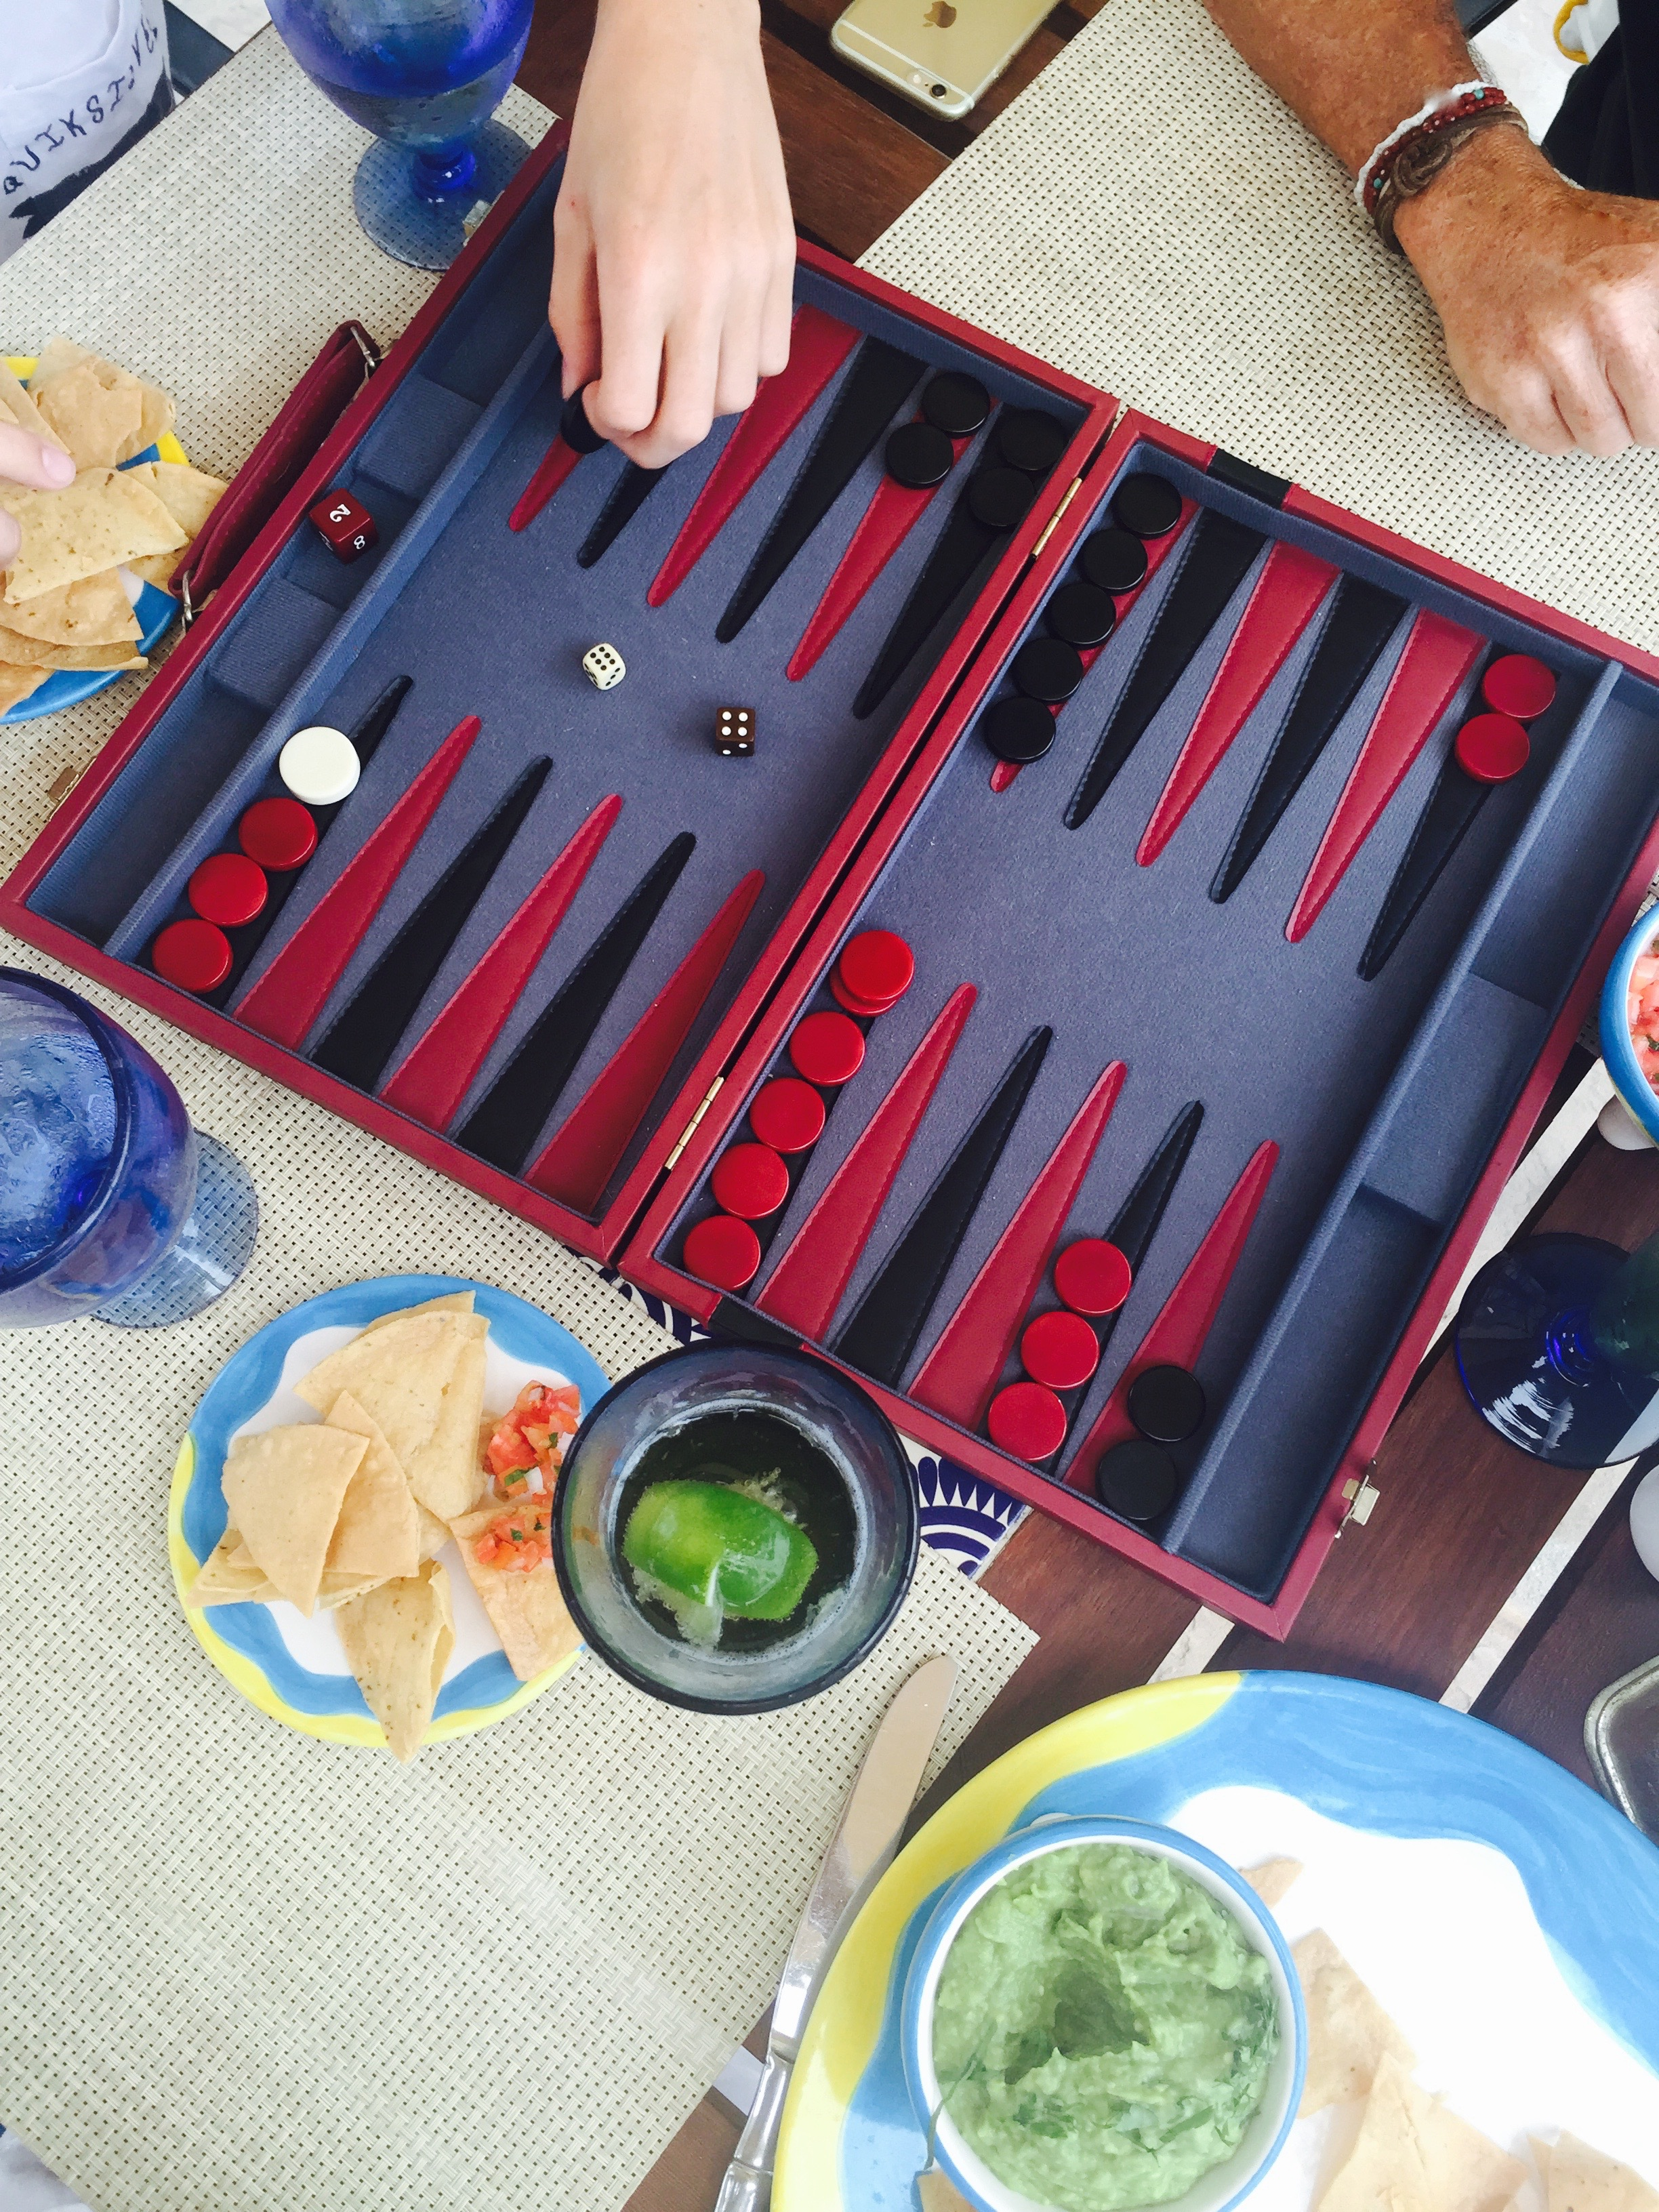 Enjoying lunch with a little backgammon at Breeze. I'm pretty sure I lost this round.